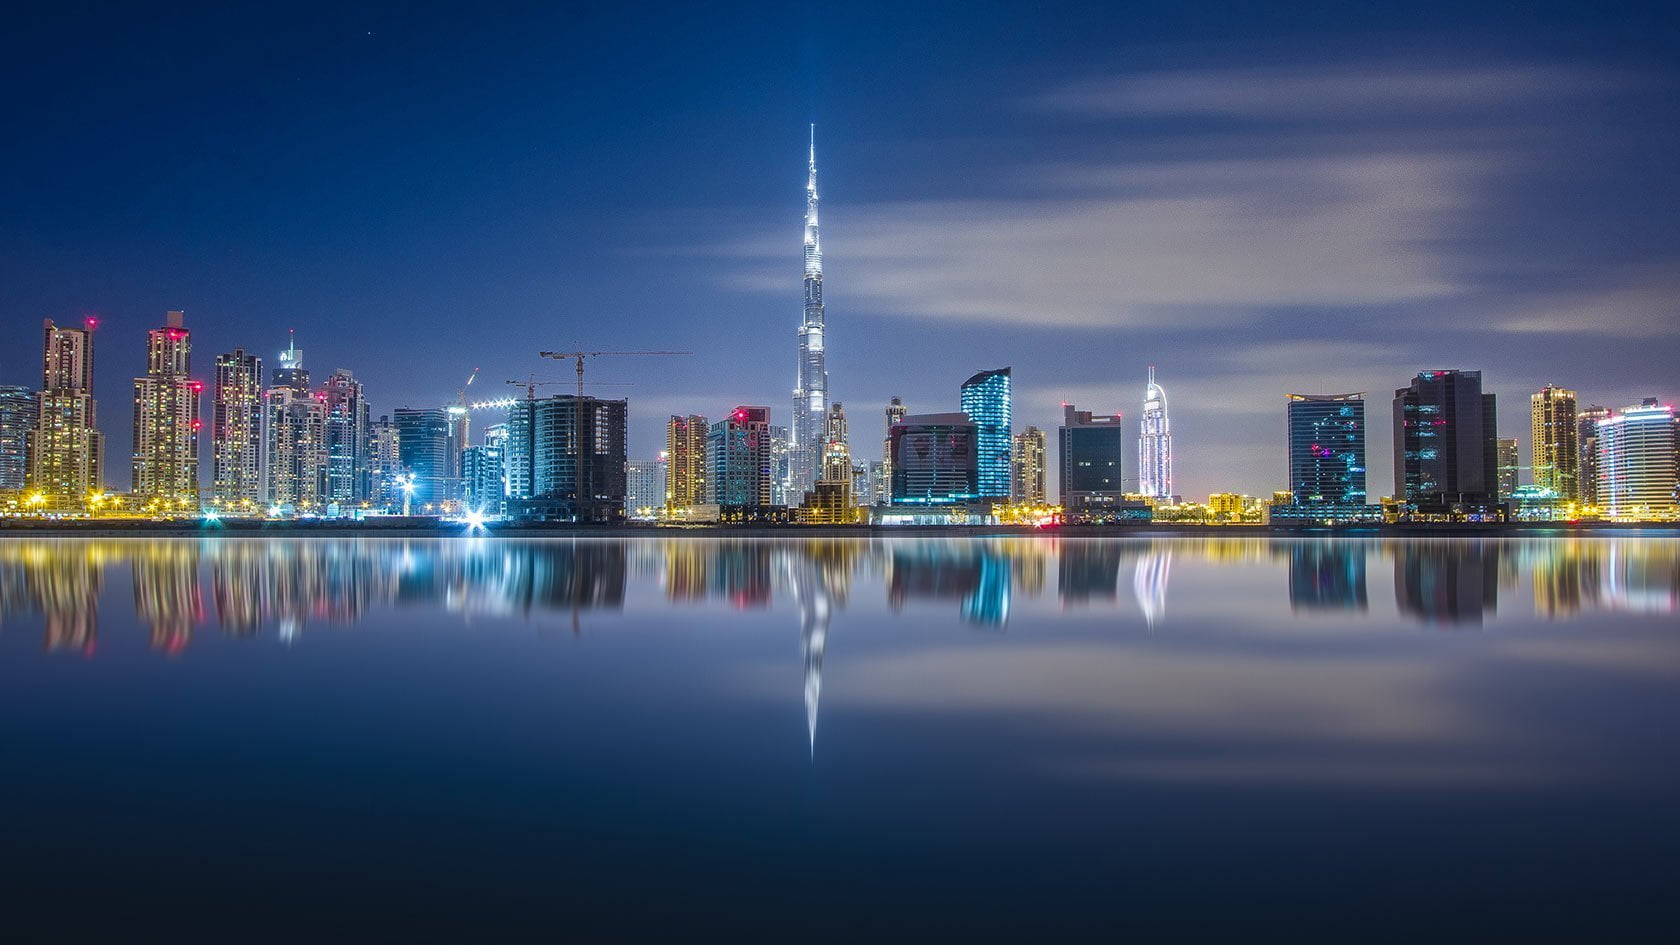 cultural dimensions united arab emirates The goal was to explore the major elements and dimensions of culture in the united arab emirates united arab emirates global business cultural analysis.